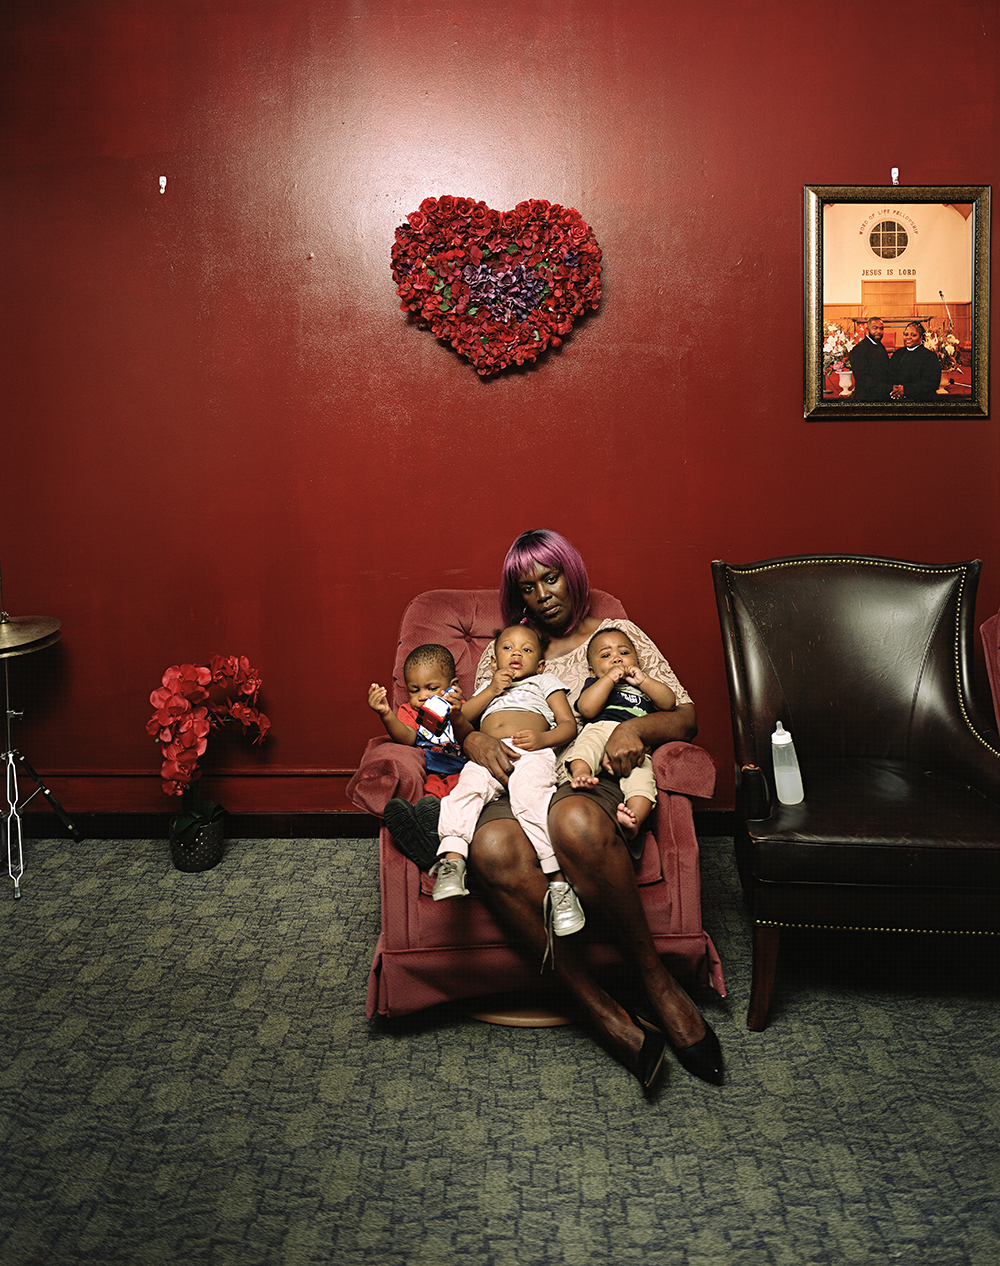 young grandmother © Deana Lawson Centropy